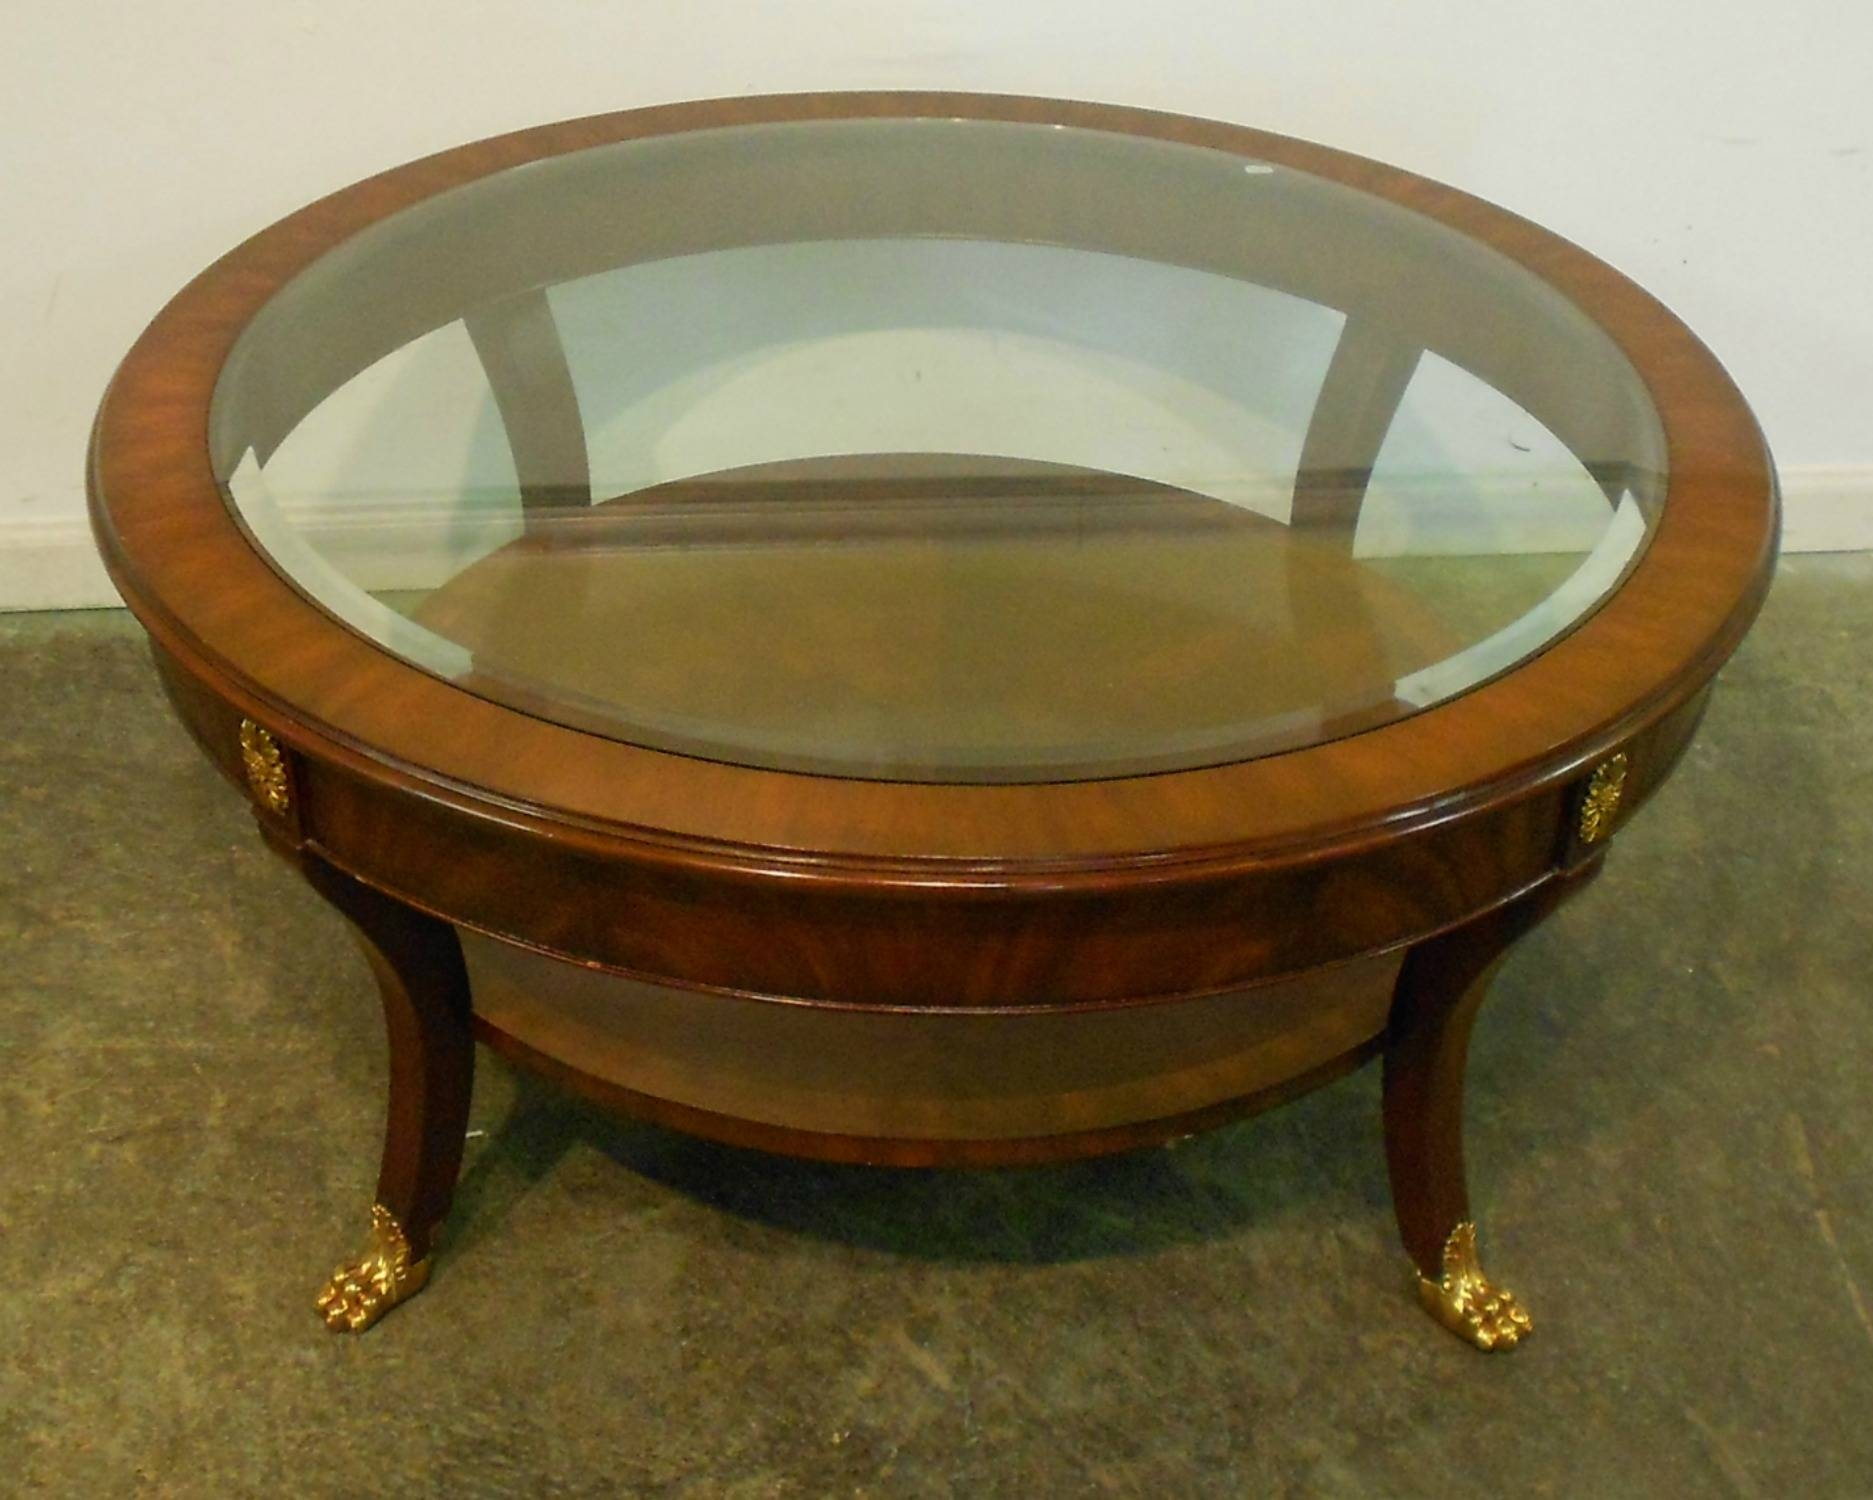 Round Wood Coffee Table With Glass Top | Coffee Tables Decoration pertaining to Round Glass and Wood Coffee Tables (Image 26 of 30)